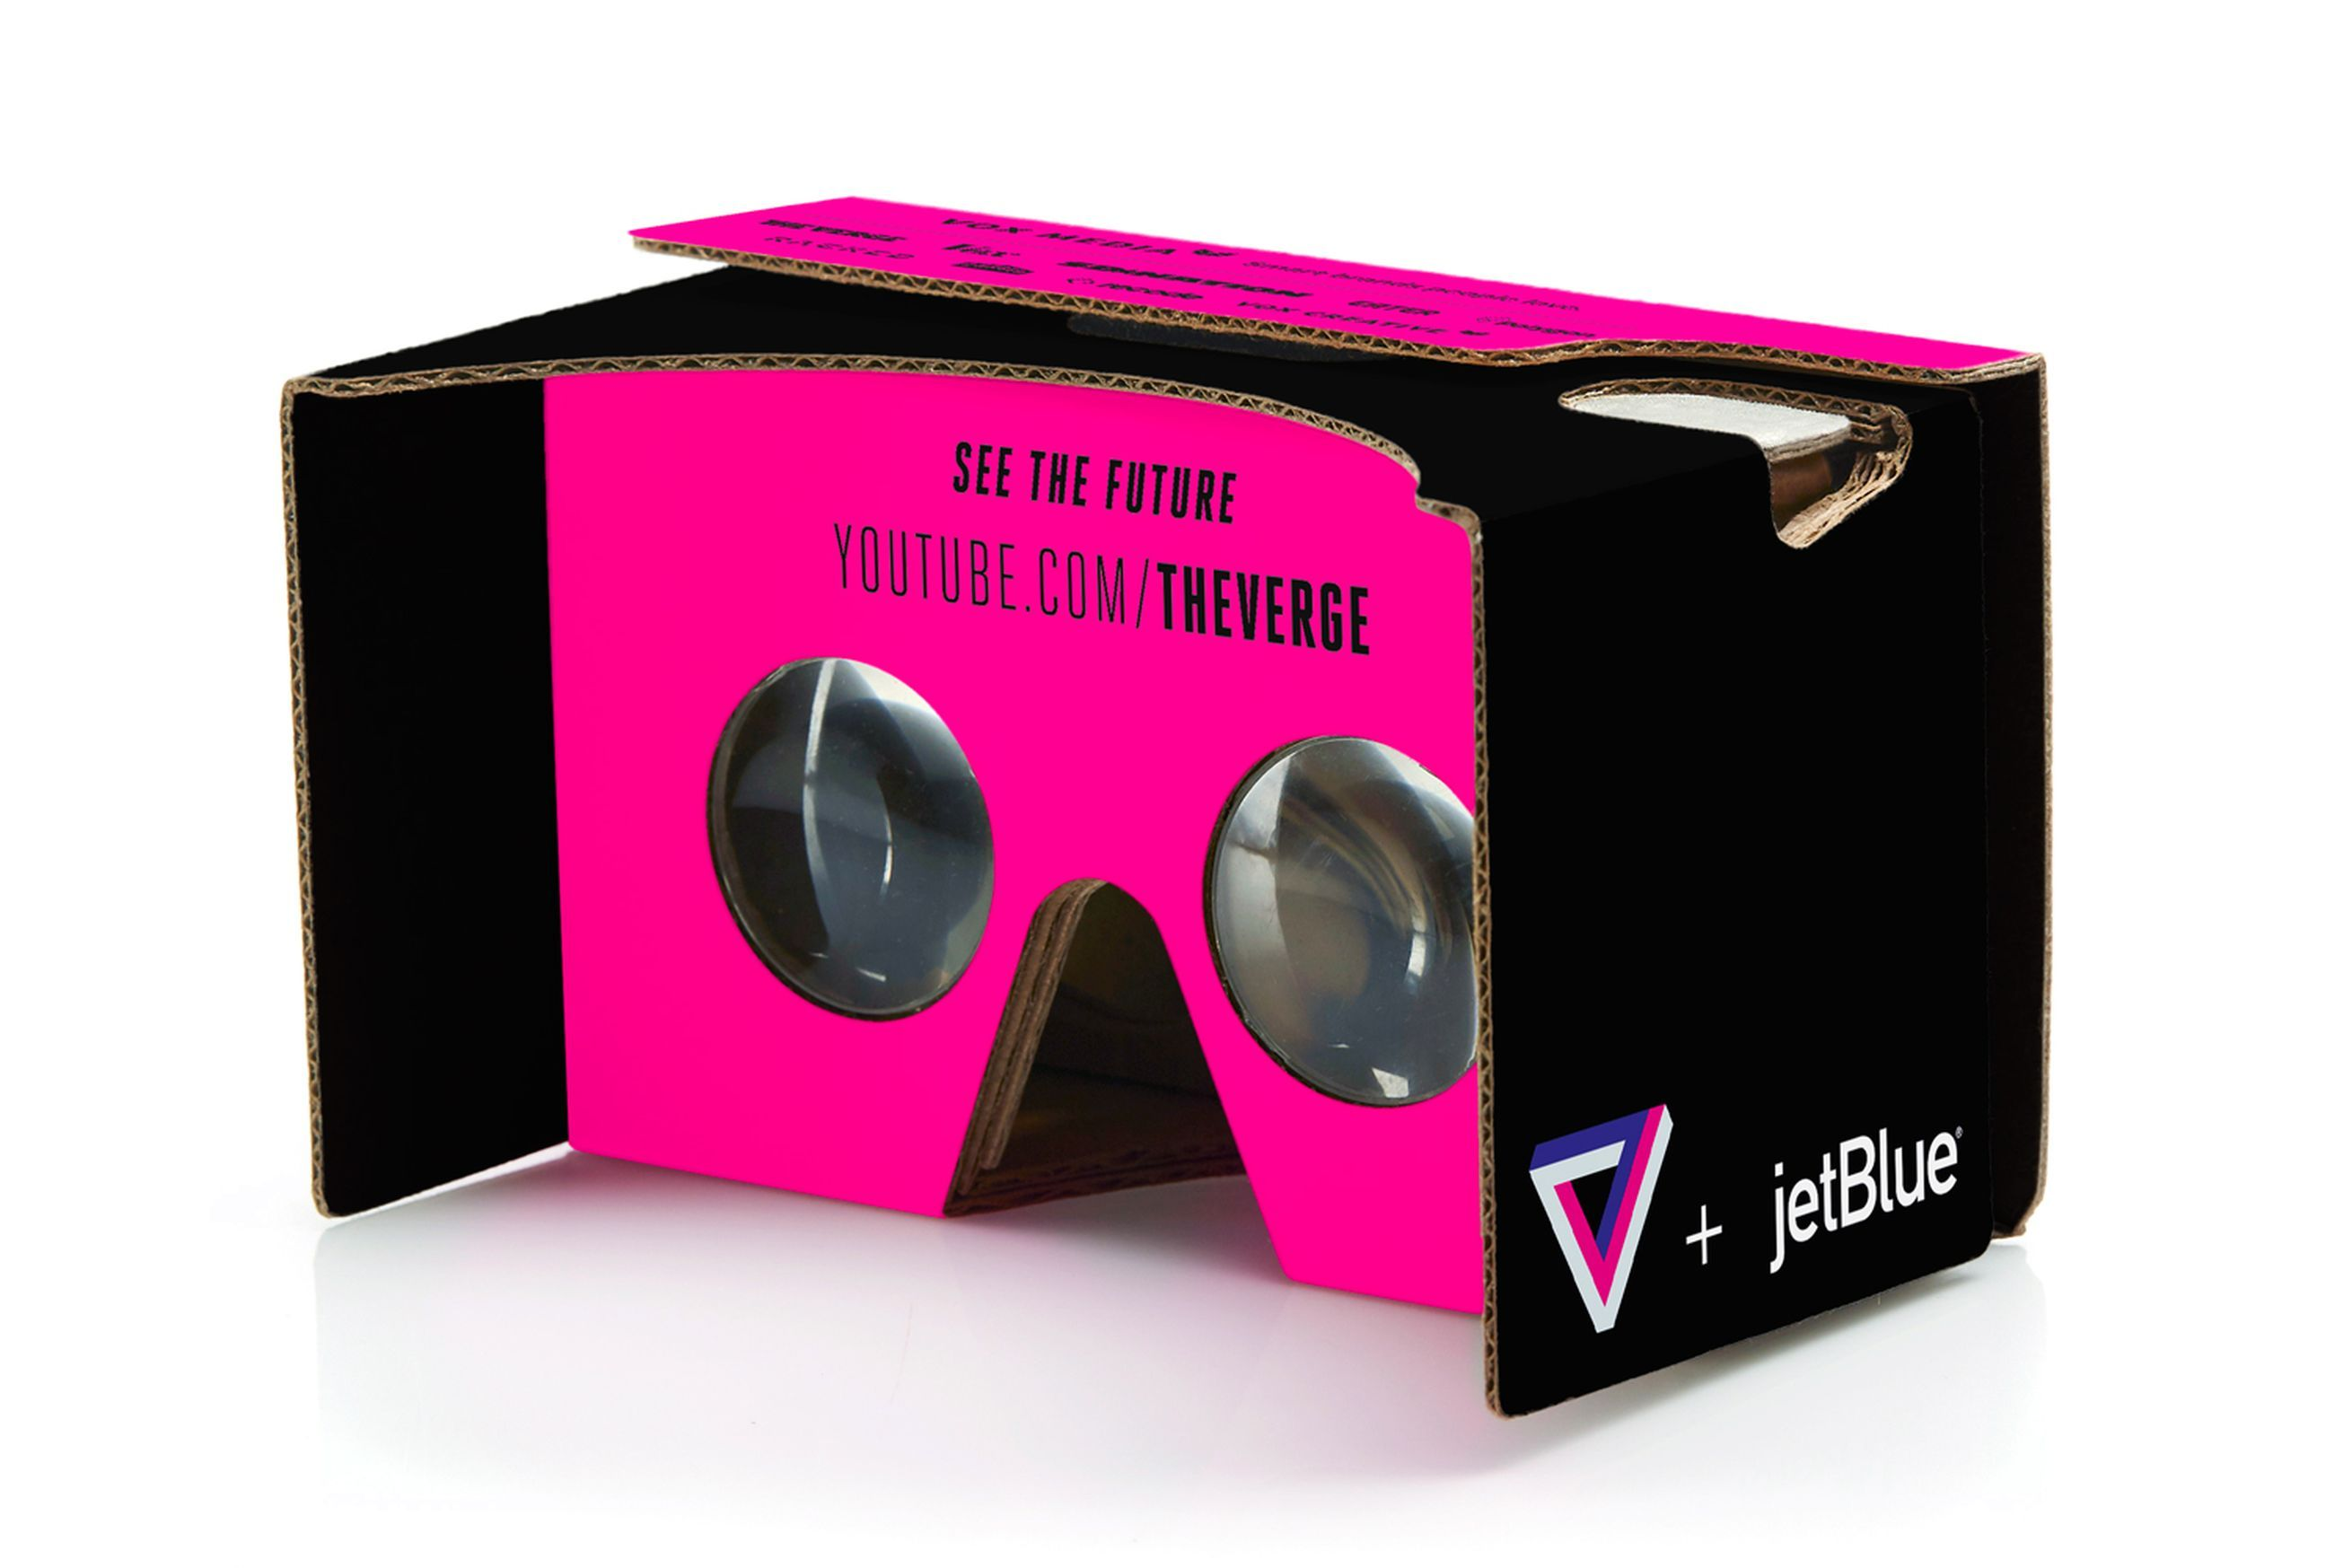 The Verge and JetBlue are turning flights to CES into VR getaways - The Verge